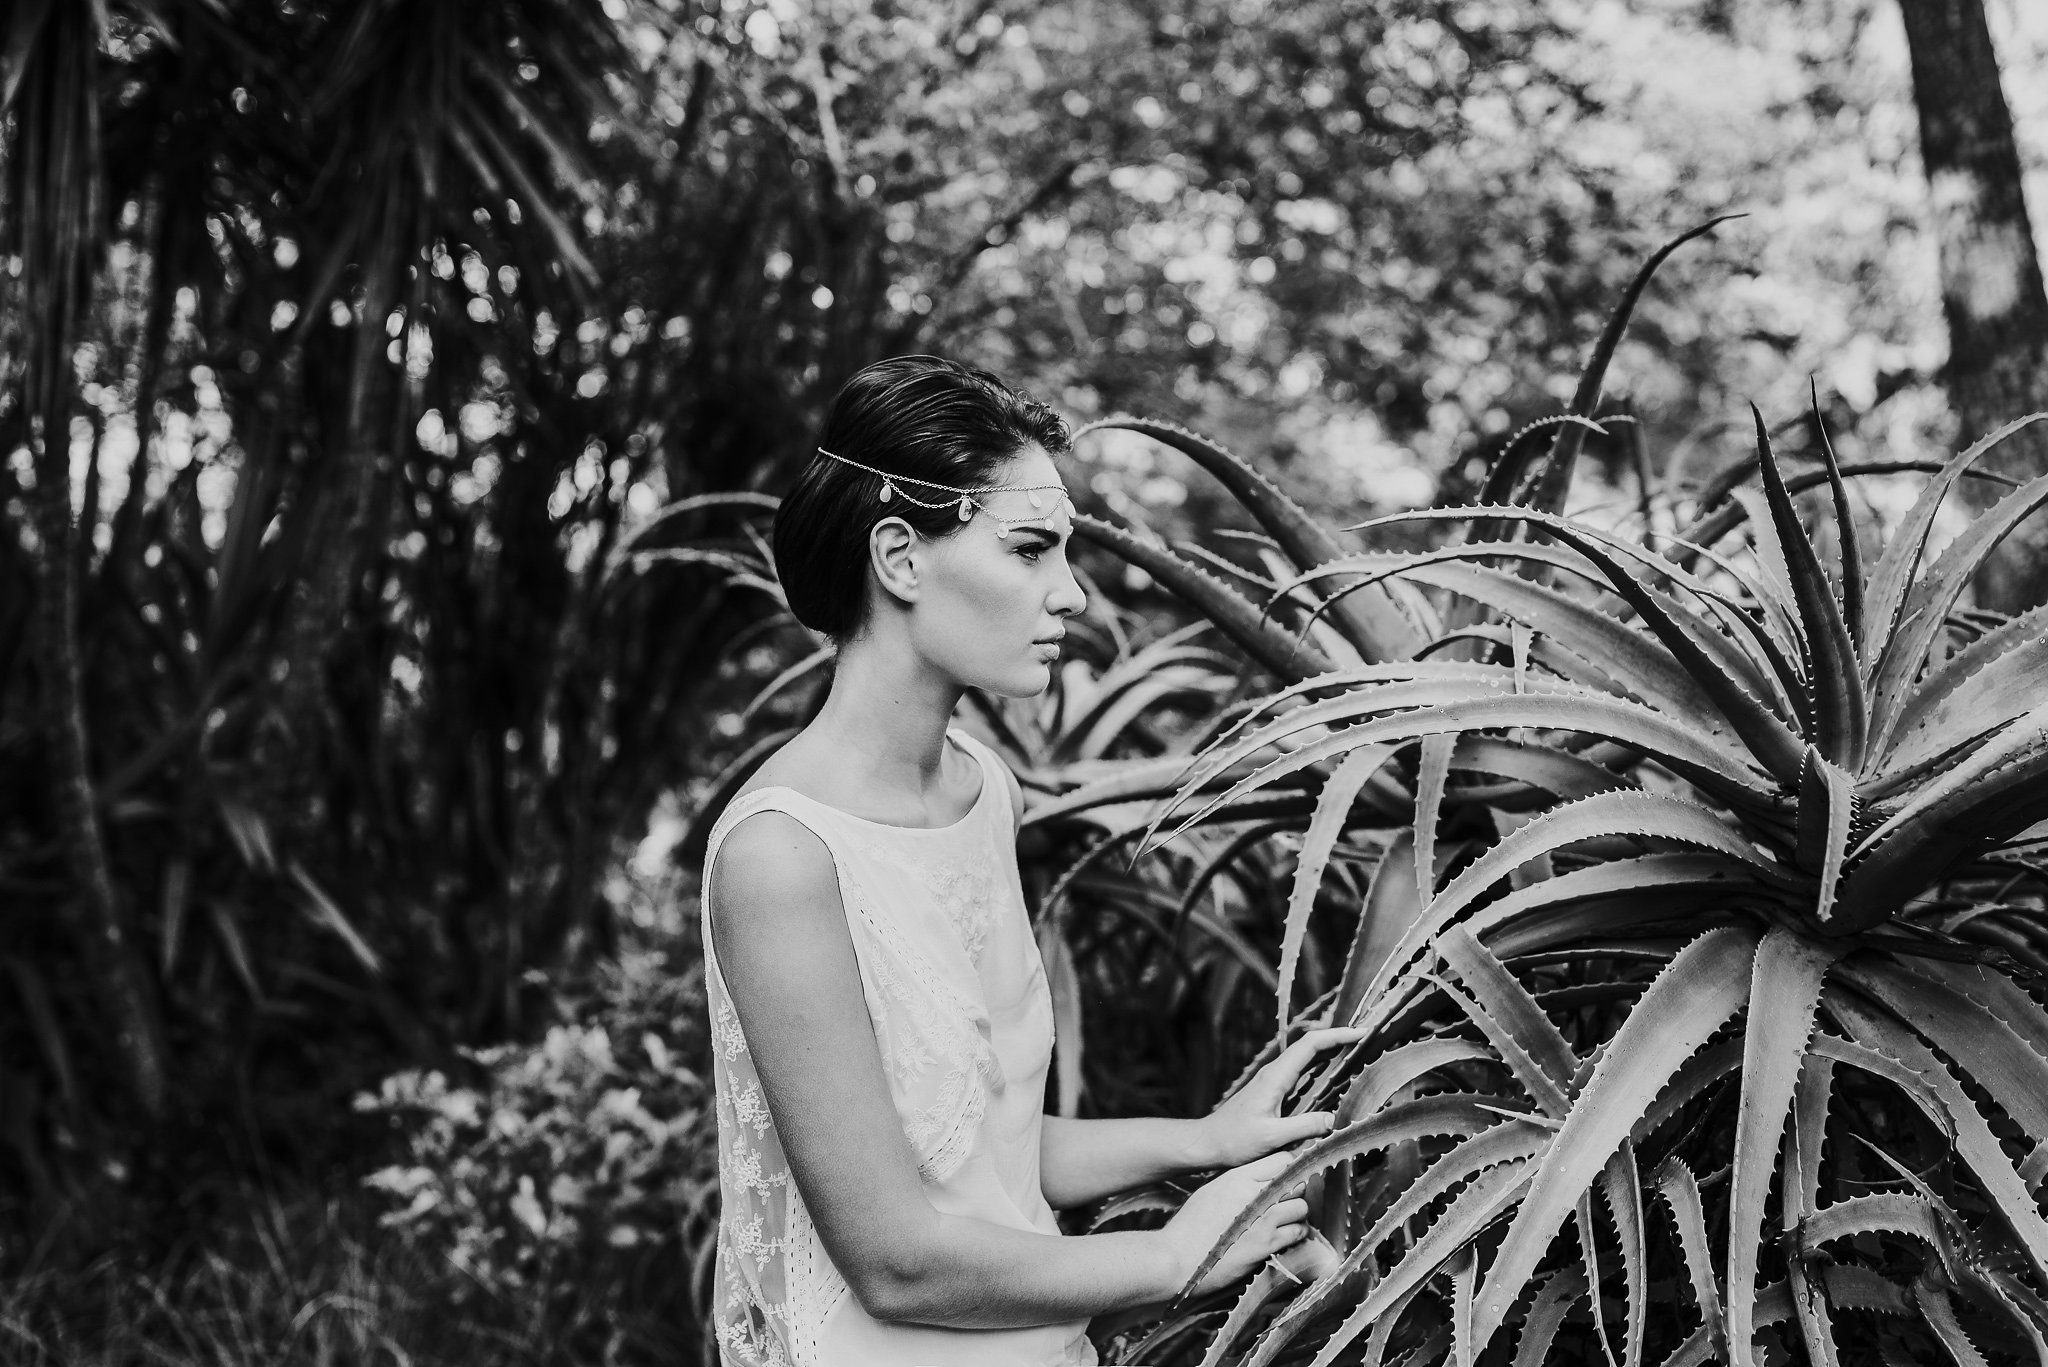 inspirerende styled wedding shoot in Zuid Afrikaanse sferen // Marilyn Bartman-engaged.nl